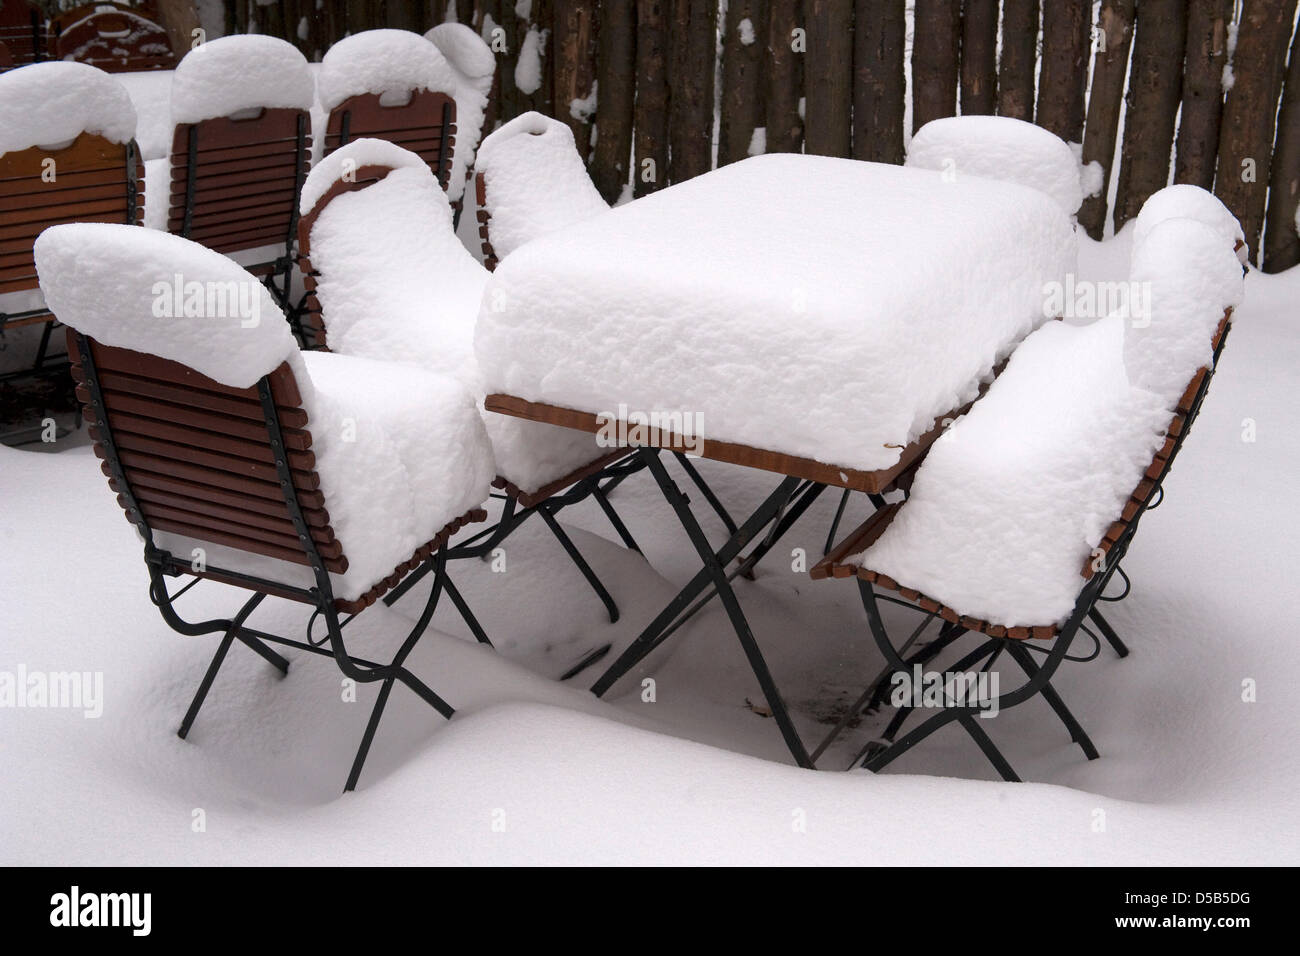 Chairs And A Table Are Covered In Snow At The Zoo In Leipzig, Germany, 11  January 2010. Only Few Animals Can Be Seen In The Outdoor Enclosures As  Most Of ...